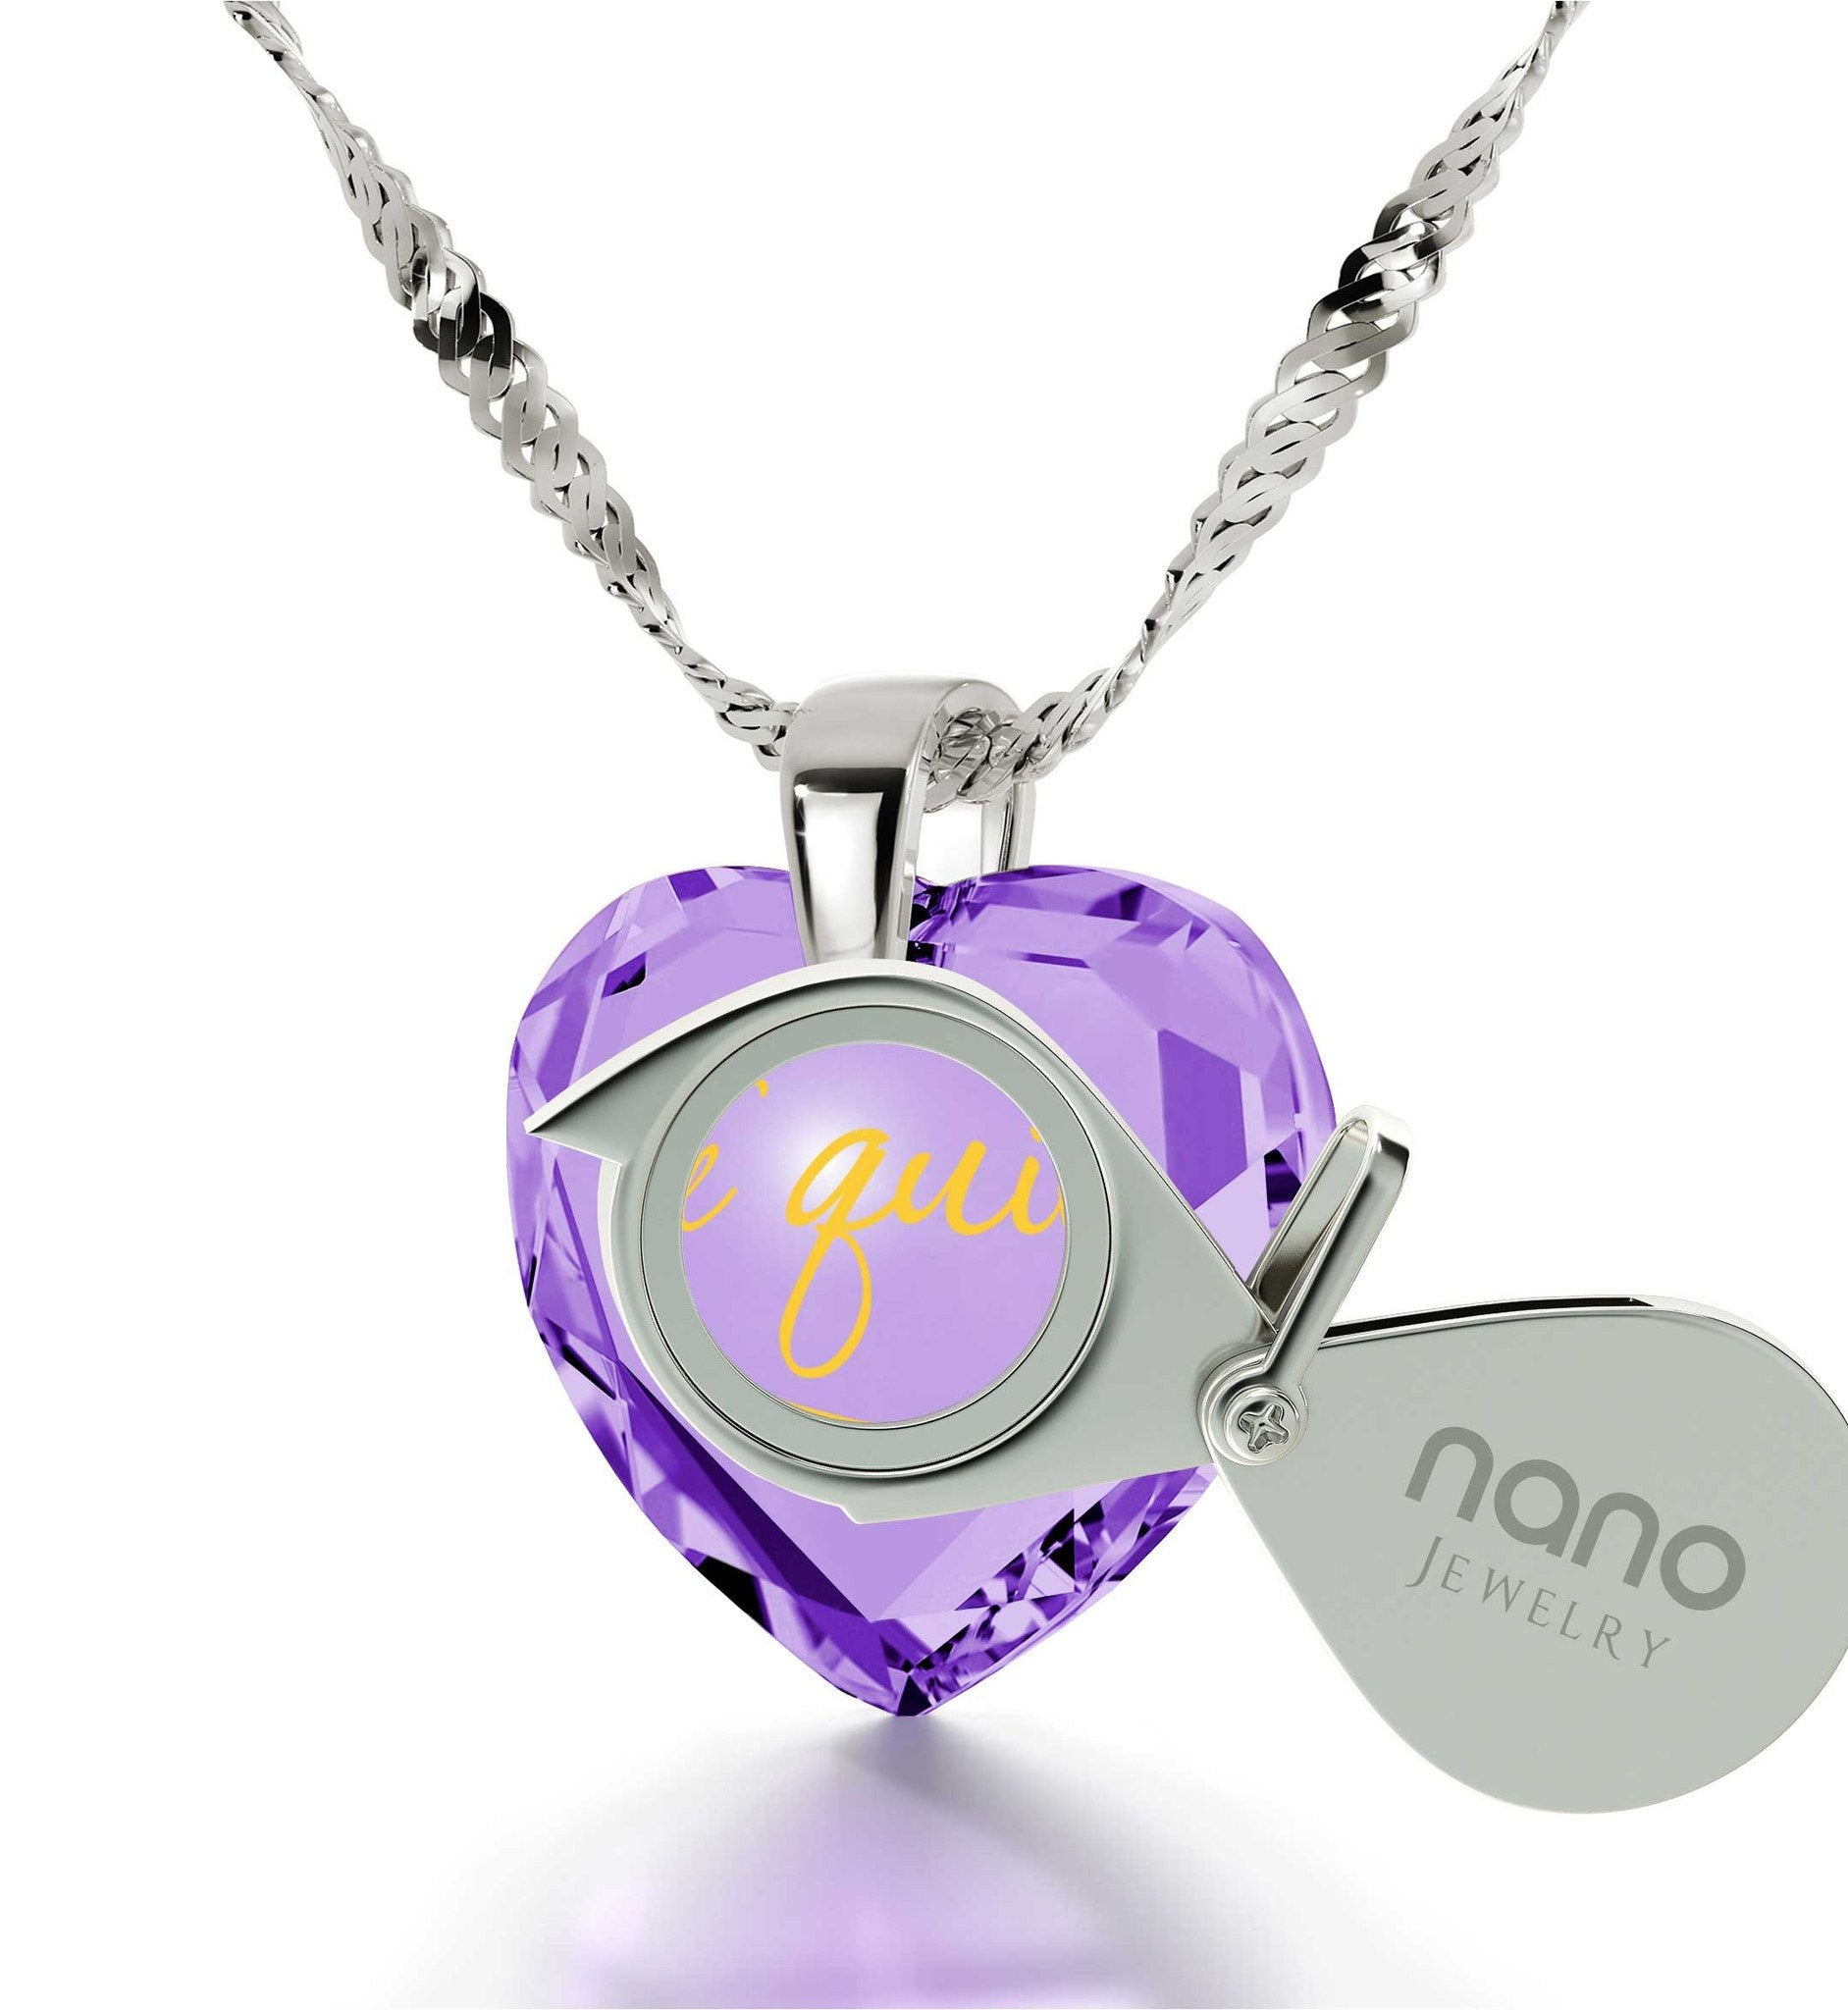 """What to Get Girlfriend for Birthday, Meaningful Necklaces, ""TeQuiero"", Xmas Gifts for the Wife by Nano Jewelry"""